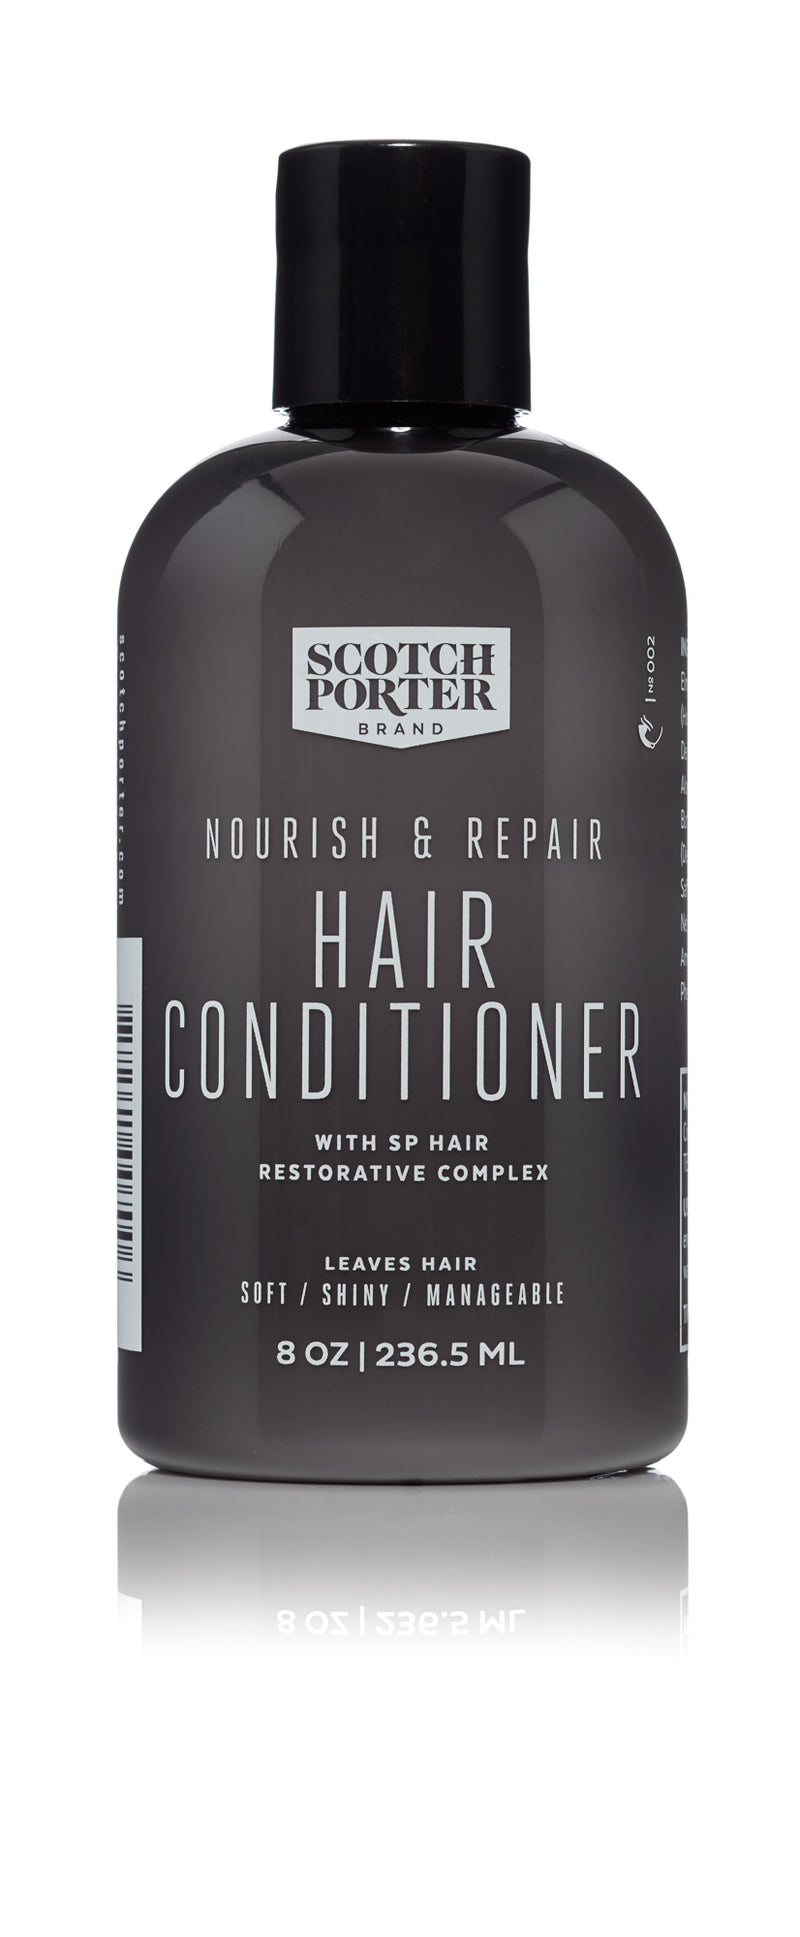 Nourish and Repair Hair Conditioner